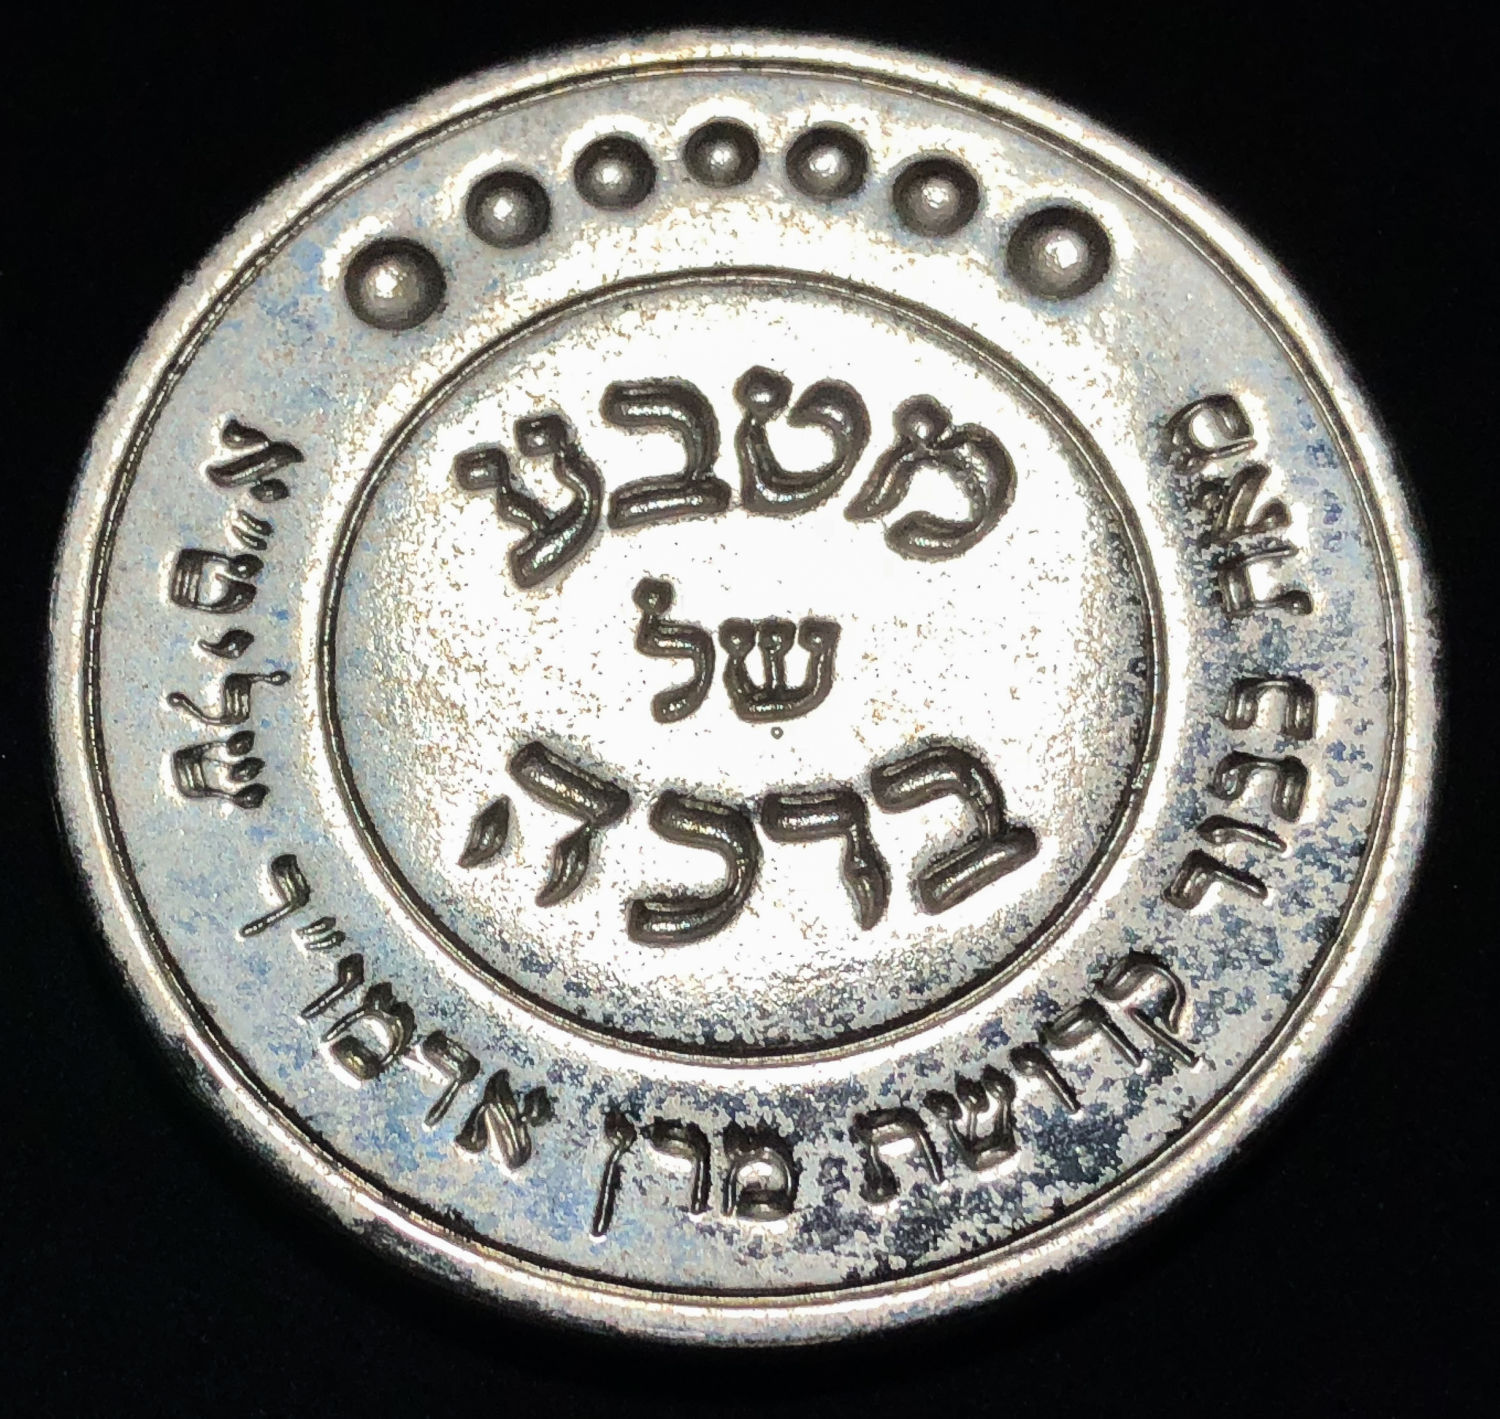 Lot 61 - Medals, Tokens.  -  yigal avrahamy Auction 03 - Coins and Banknotes of Israel and Palestine, medals and tokens.